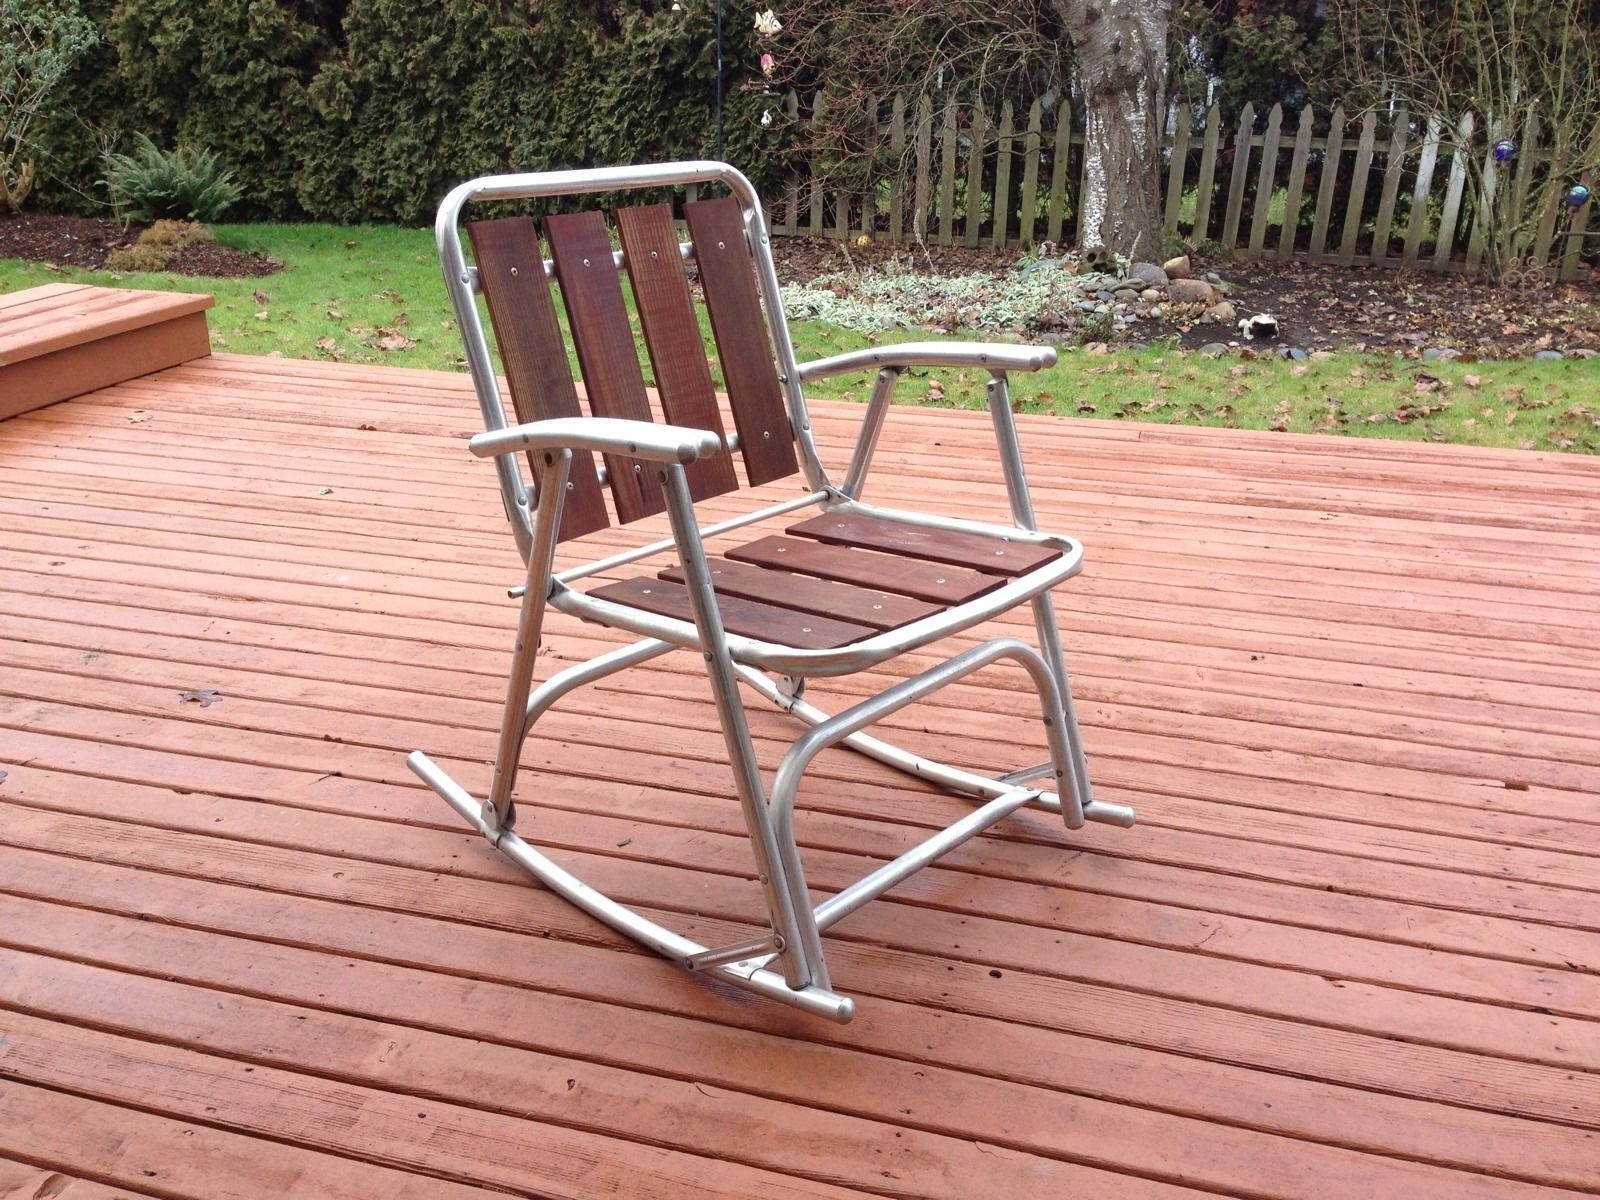 Most Recent Aluminum Patio Rocking Chairs Regarding 1 Vtg Redwood Aluminum Outdoor Patio Porch Lawn Rocking Chairs (View 11 of 20)